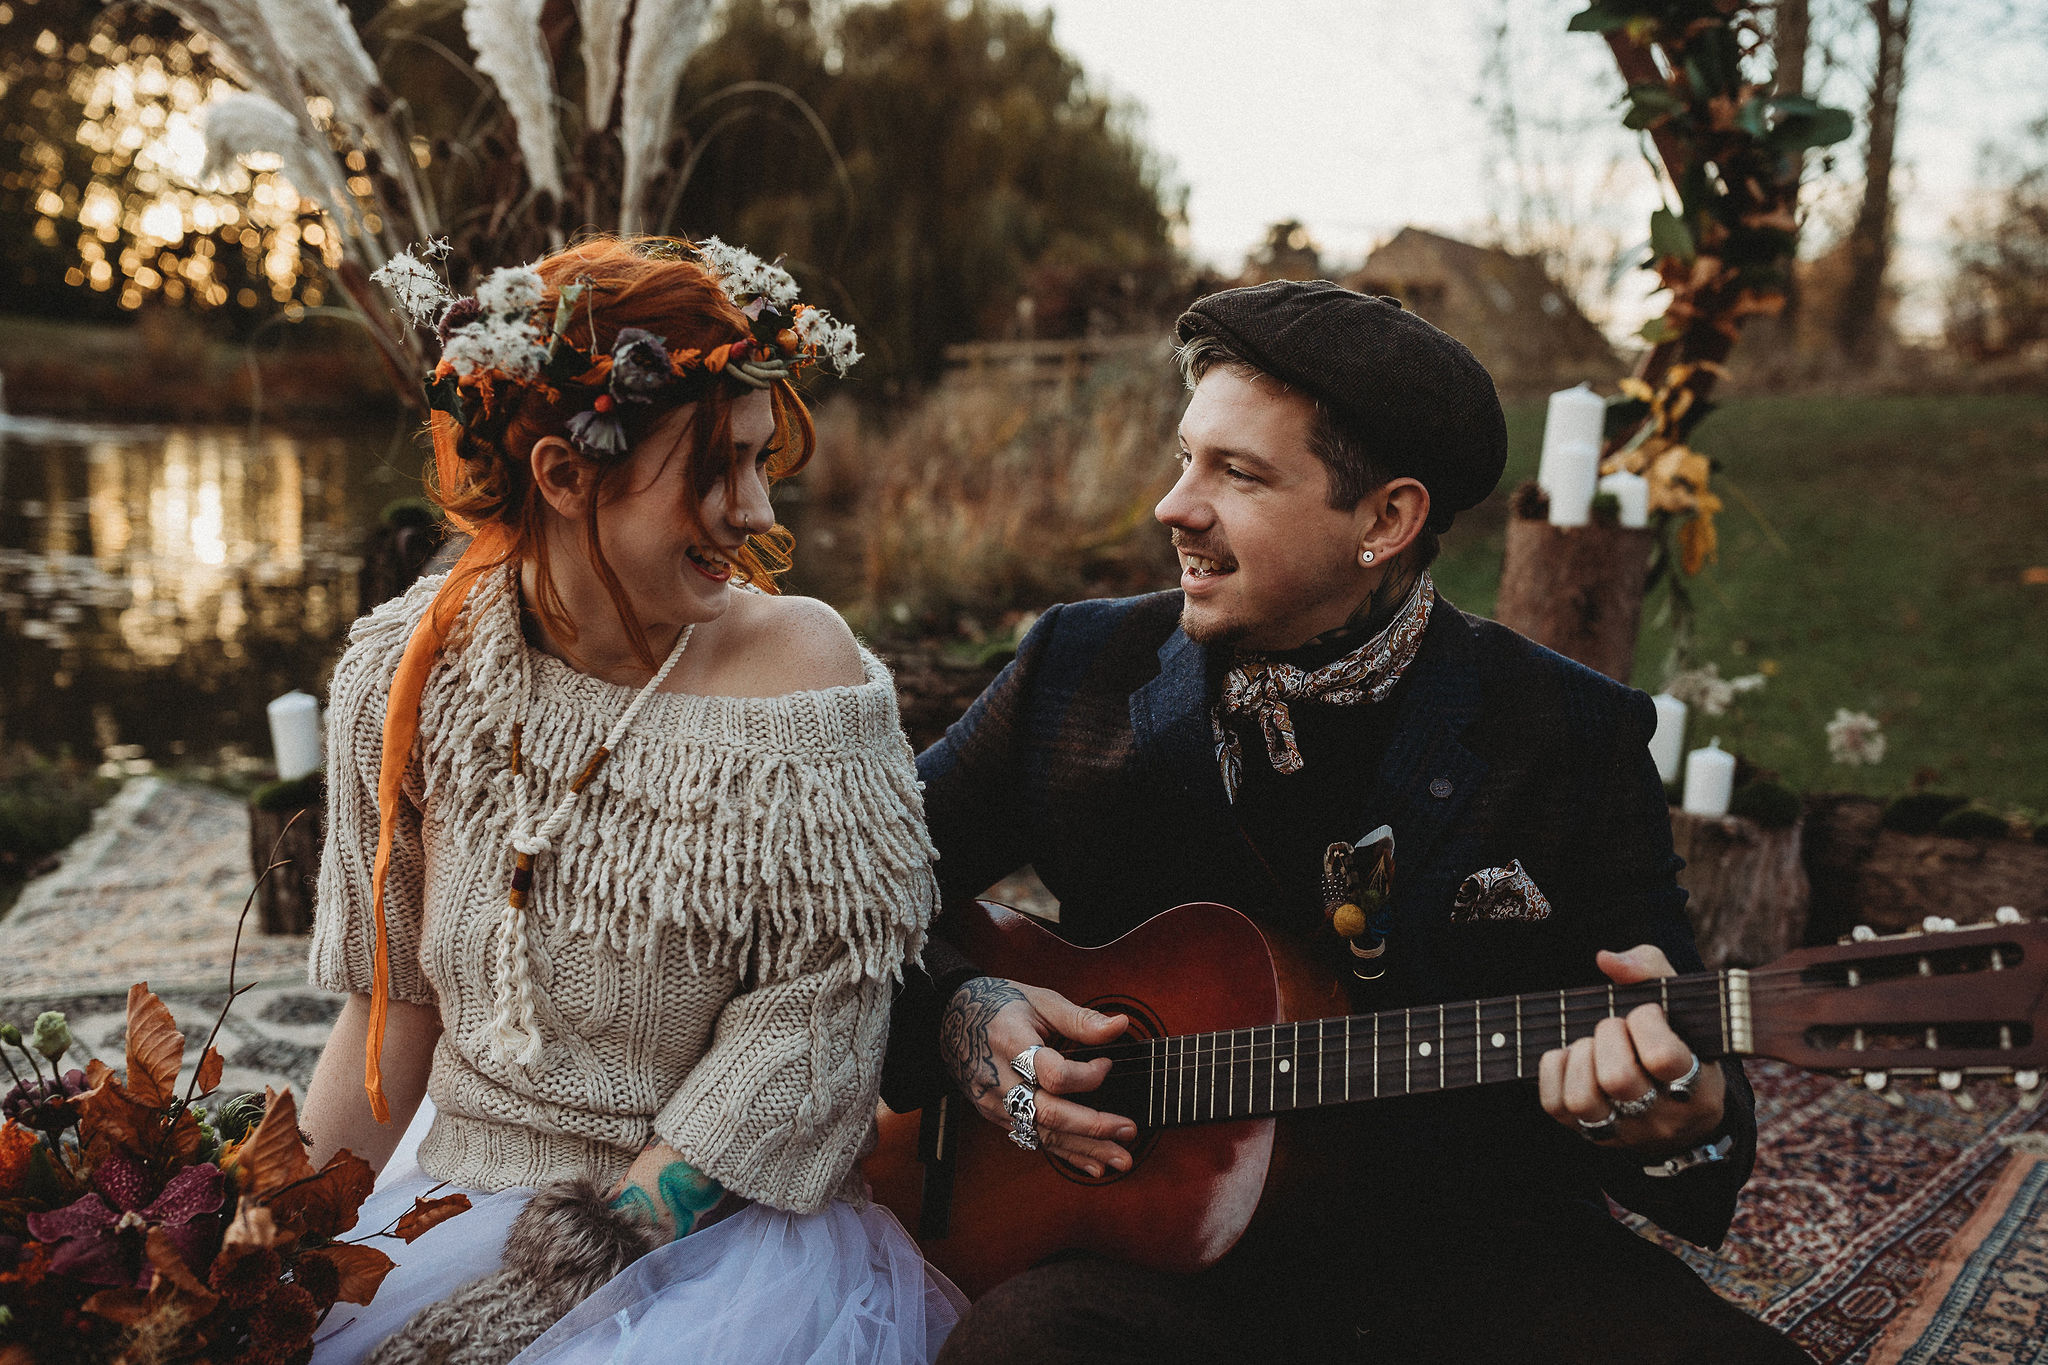 Bride and Groom with guitar